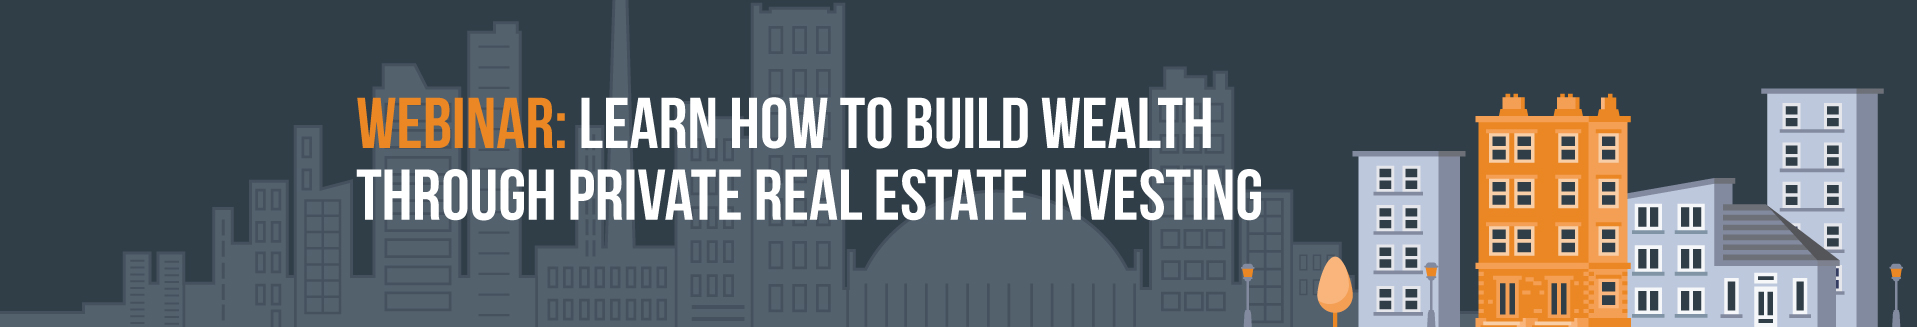 Webinar: Learn how to build wealth through private real estate investing